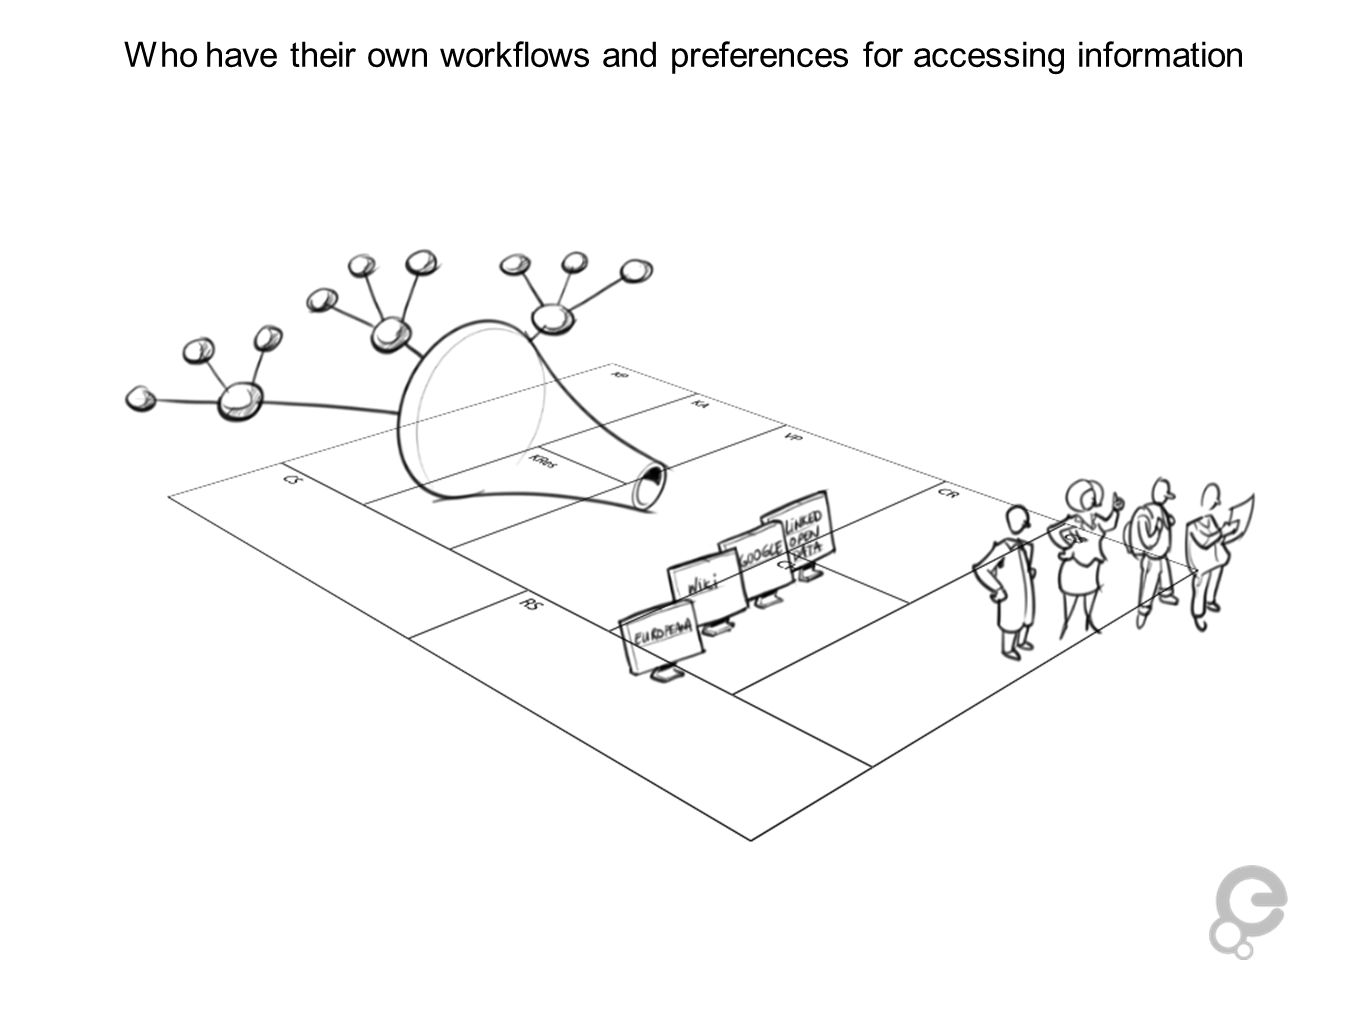 Who have their own workflows and preferences for accessing information